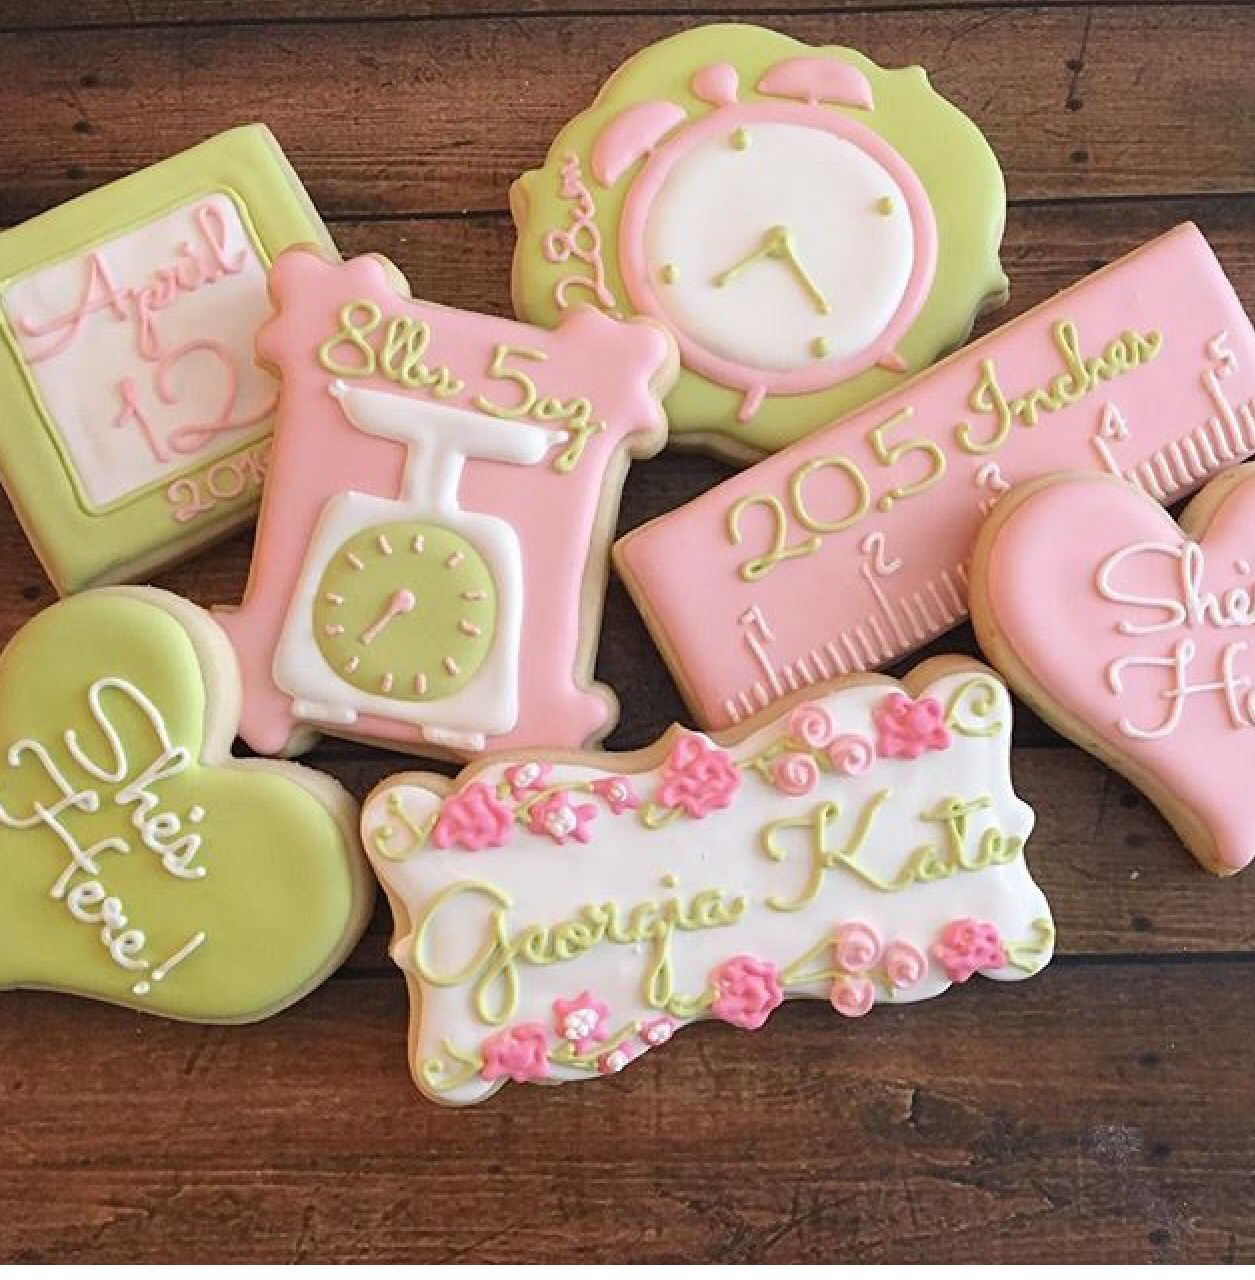 New baby arrival cookies | Cookie recipe | Pinterest | Baby arrival ...